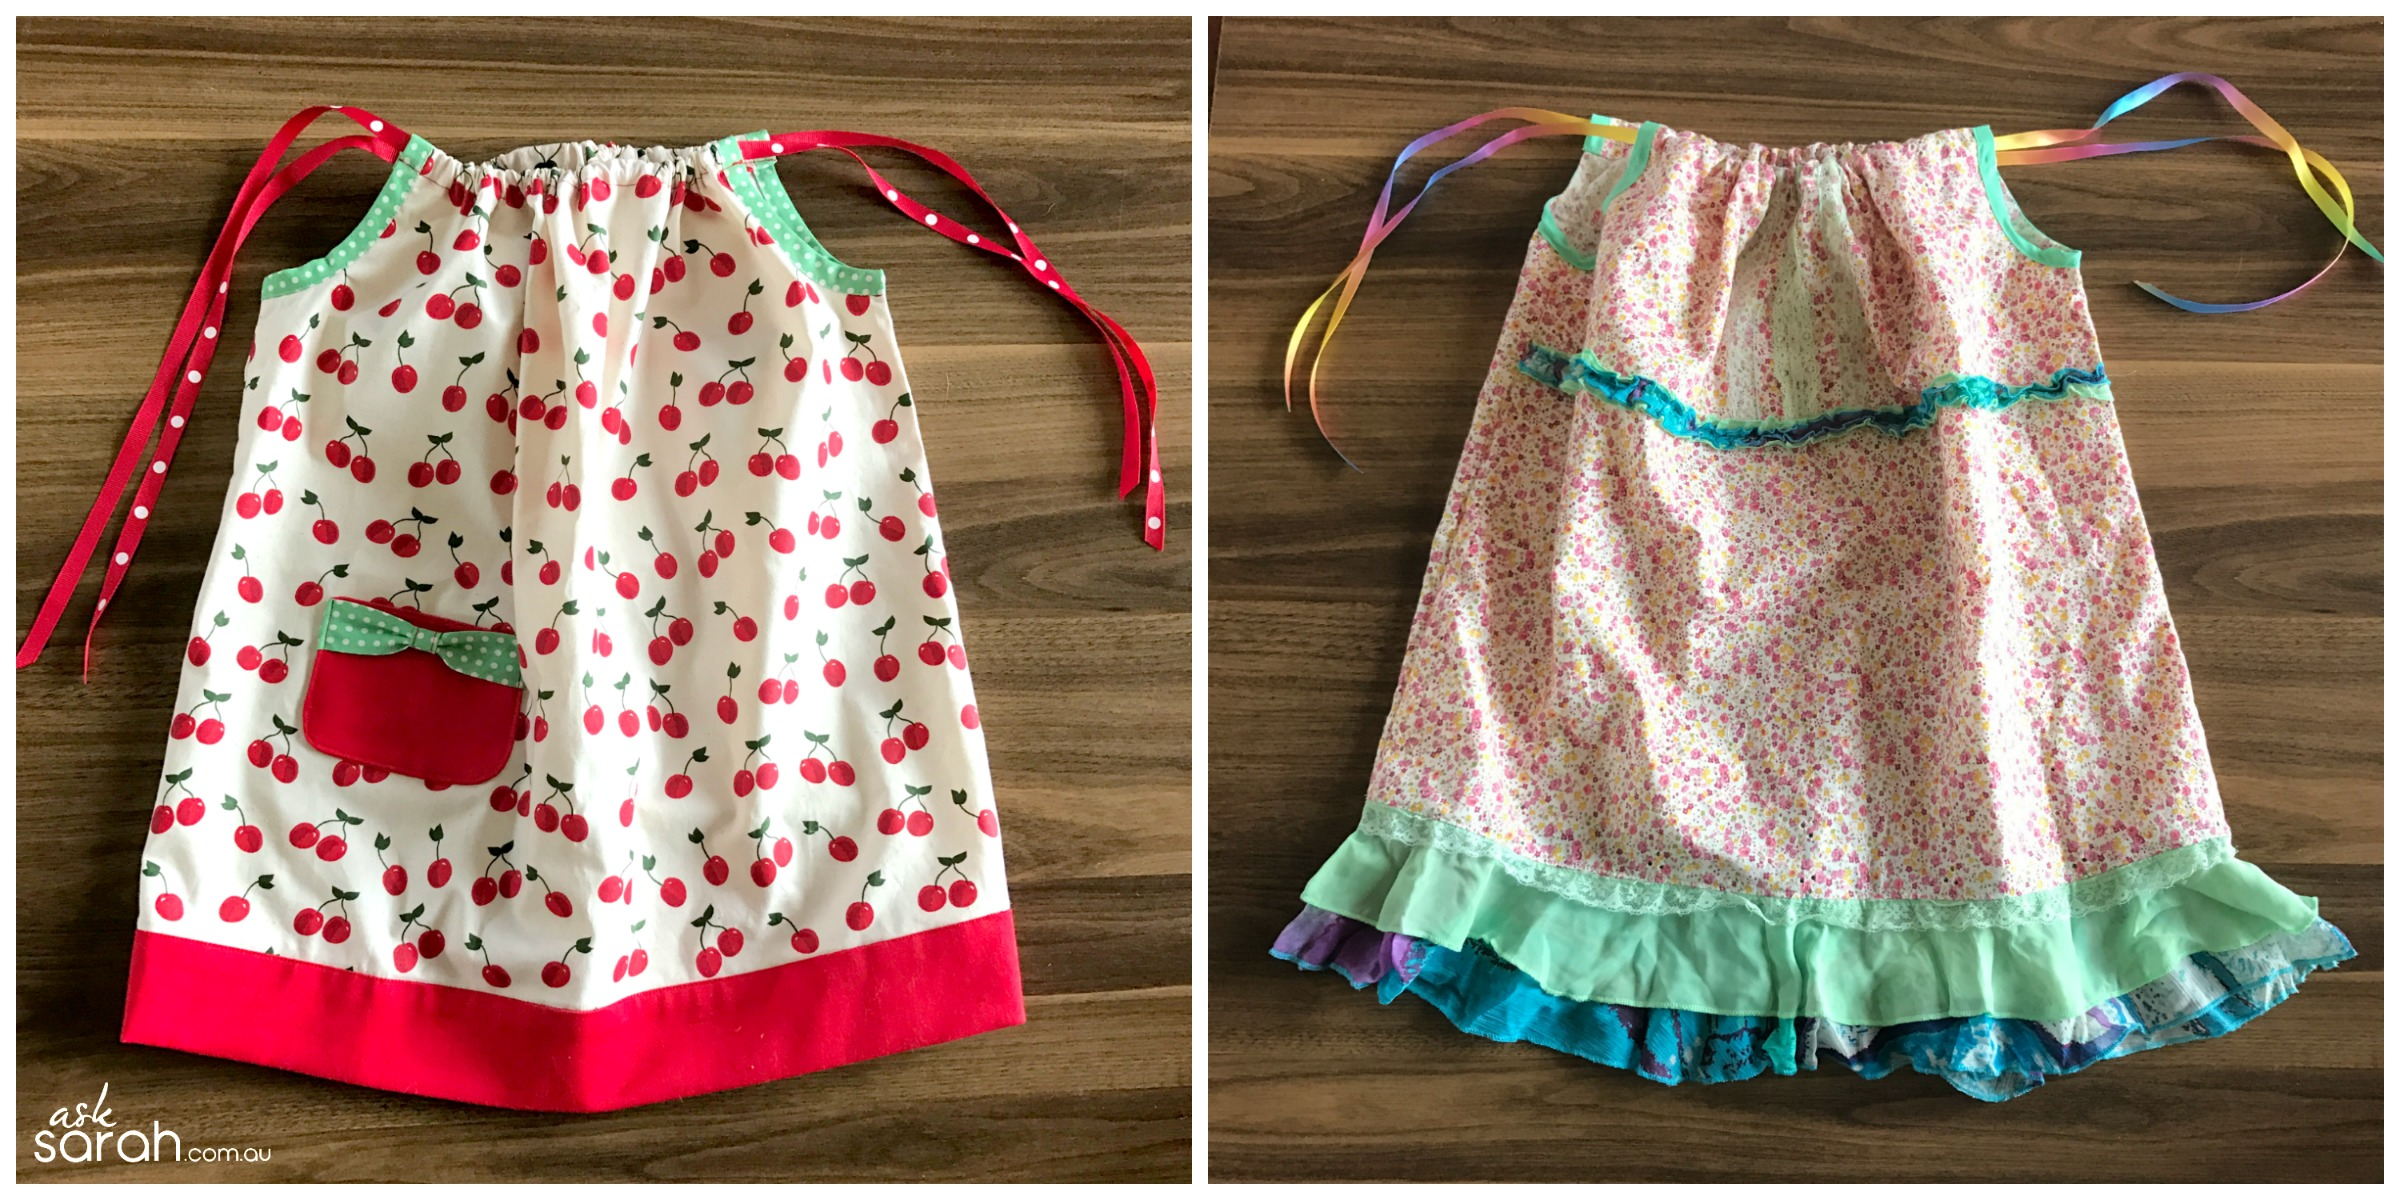 Sew Sweet Toddler Pillowcase Dresses {Link To Tutorial & Pattern Sizes 3-6 mths to 5 years} - Two Little Dresses